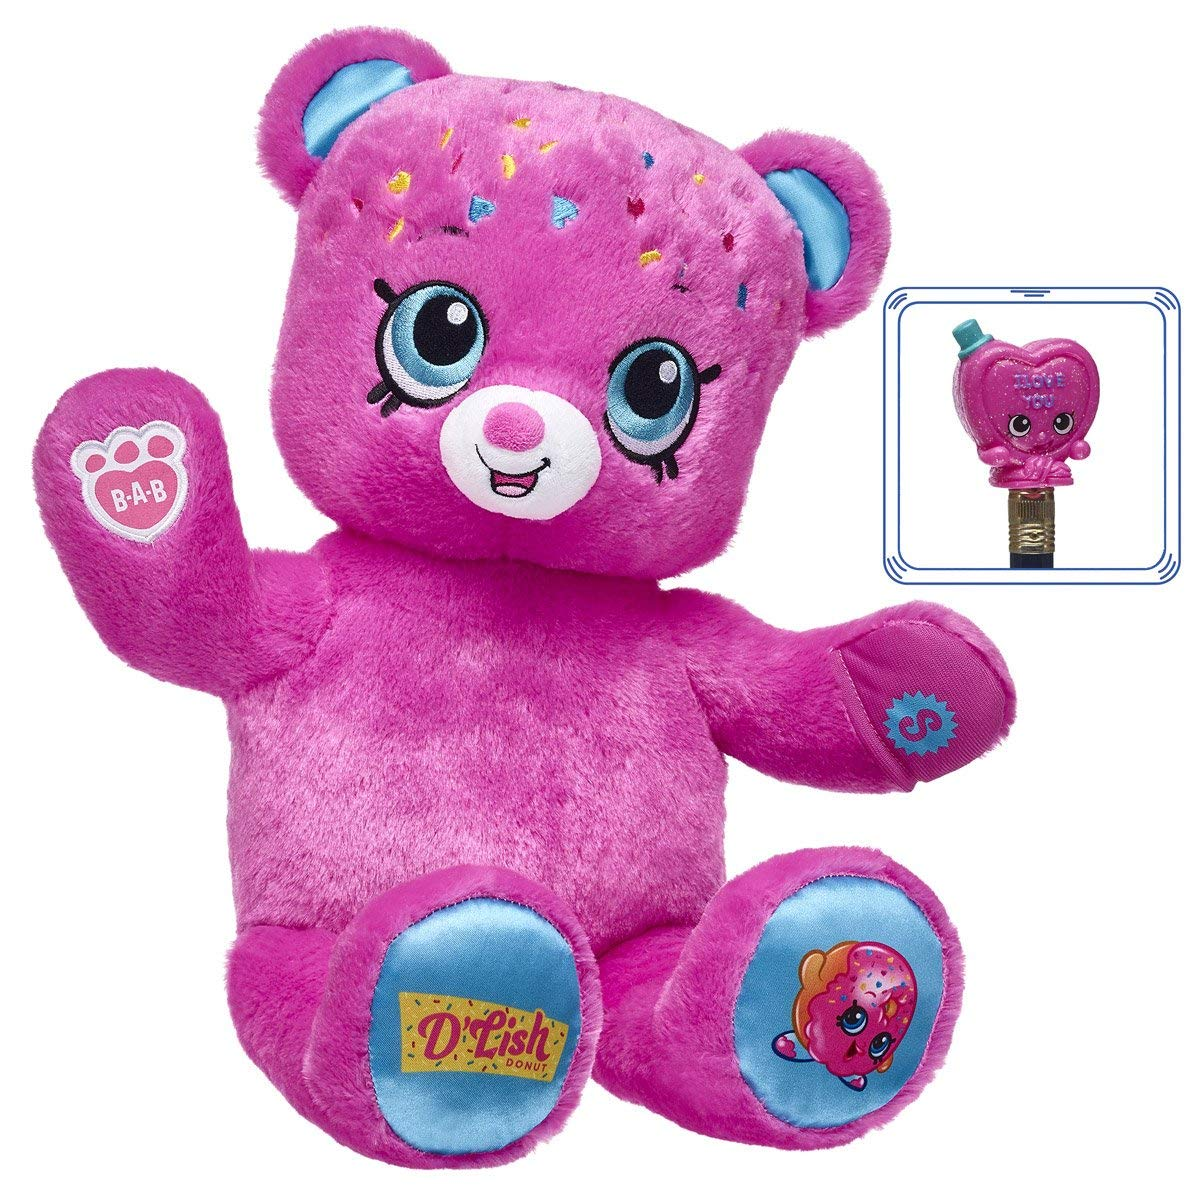 Build A Bear Workshop Shopkins D'lish Donut Teddy Bear with Exclusive Collectible Shopkins Figure